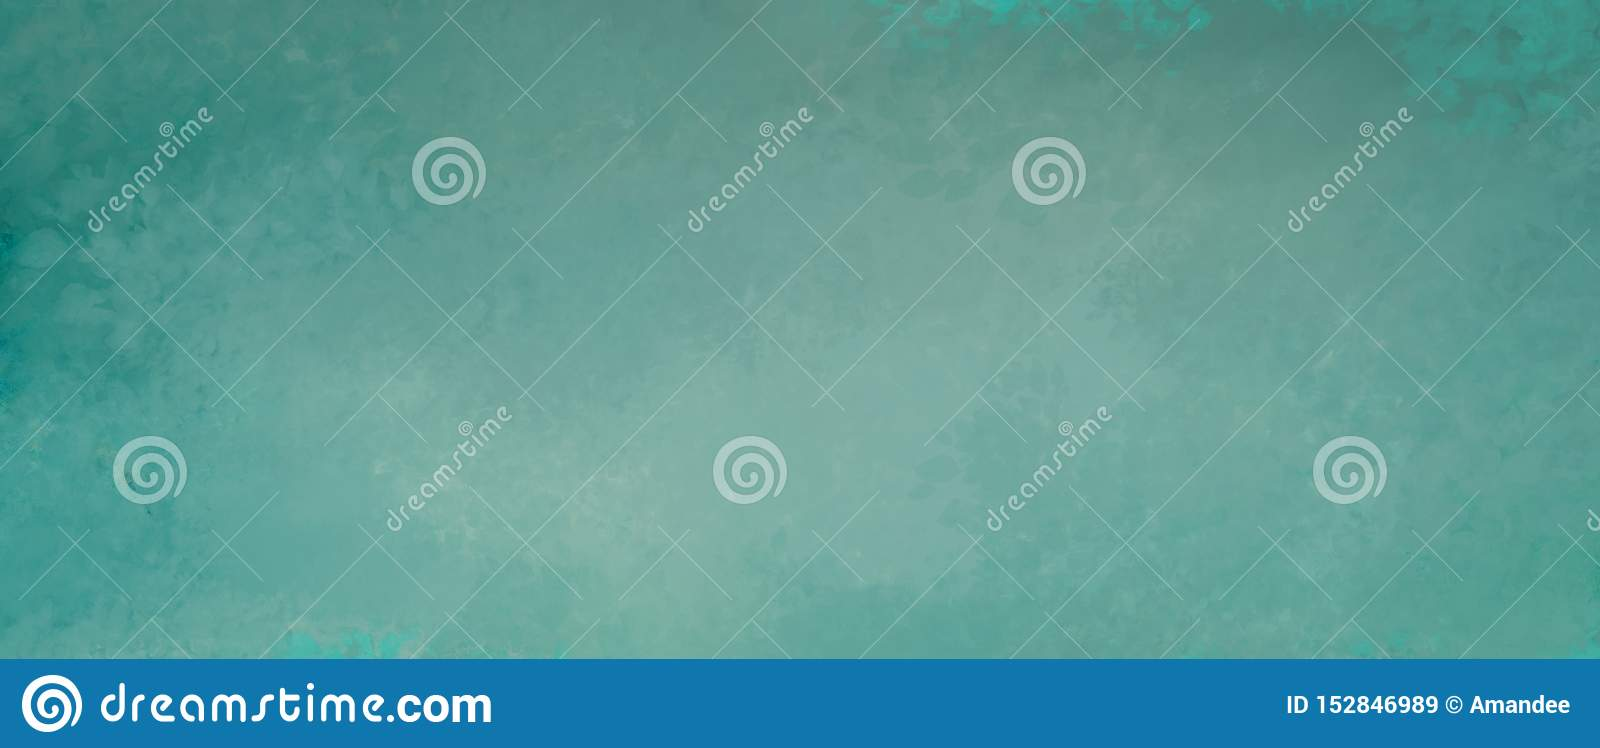 Blue green background with mottled old grunge and distressed vintage texture design in abstract blank banner design